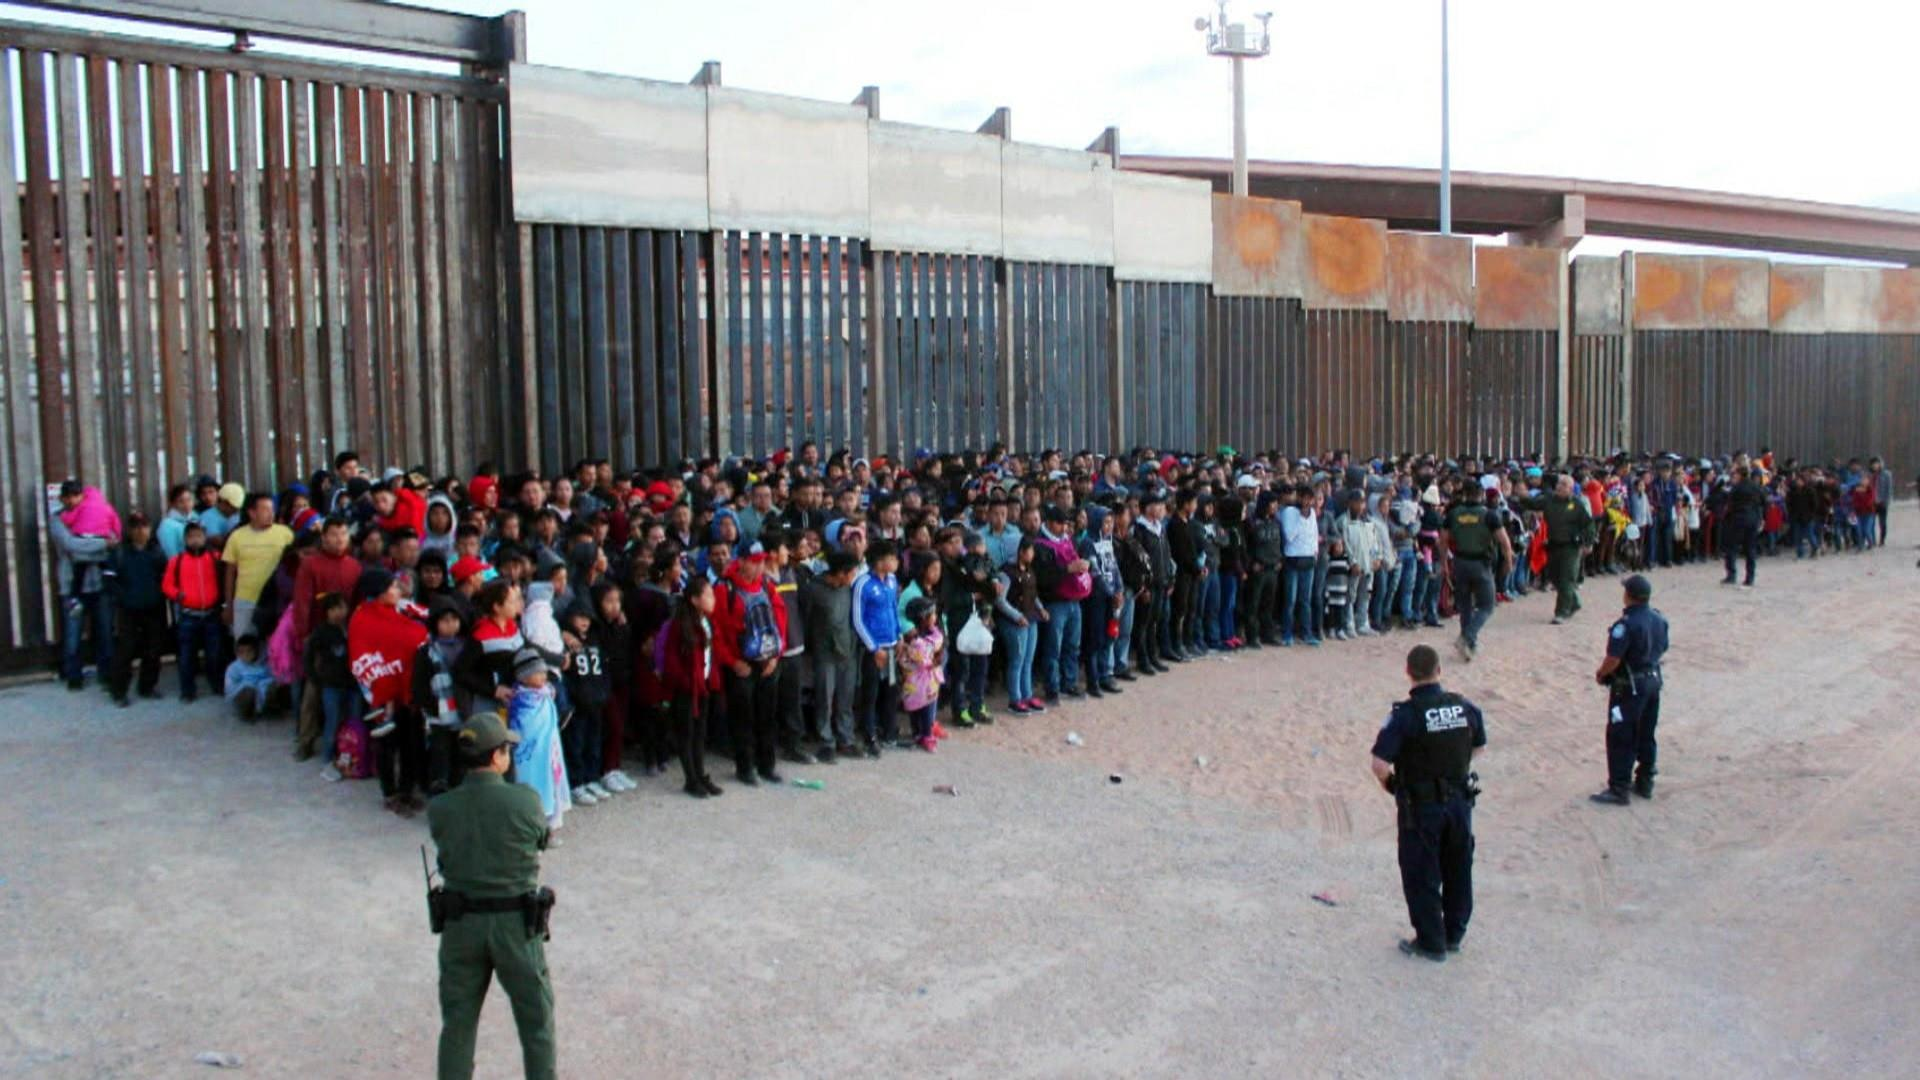 Hundreds of migrant children moved from overcrowded center